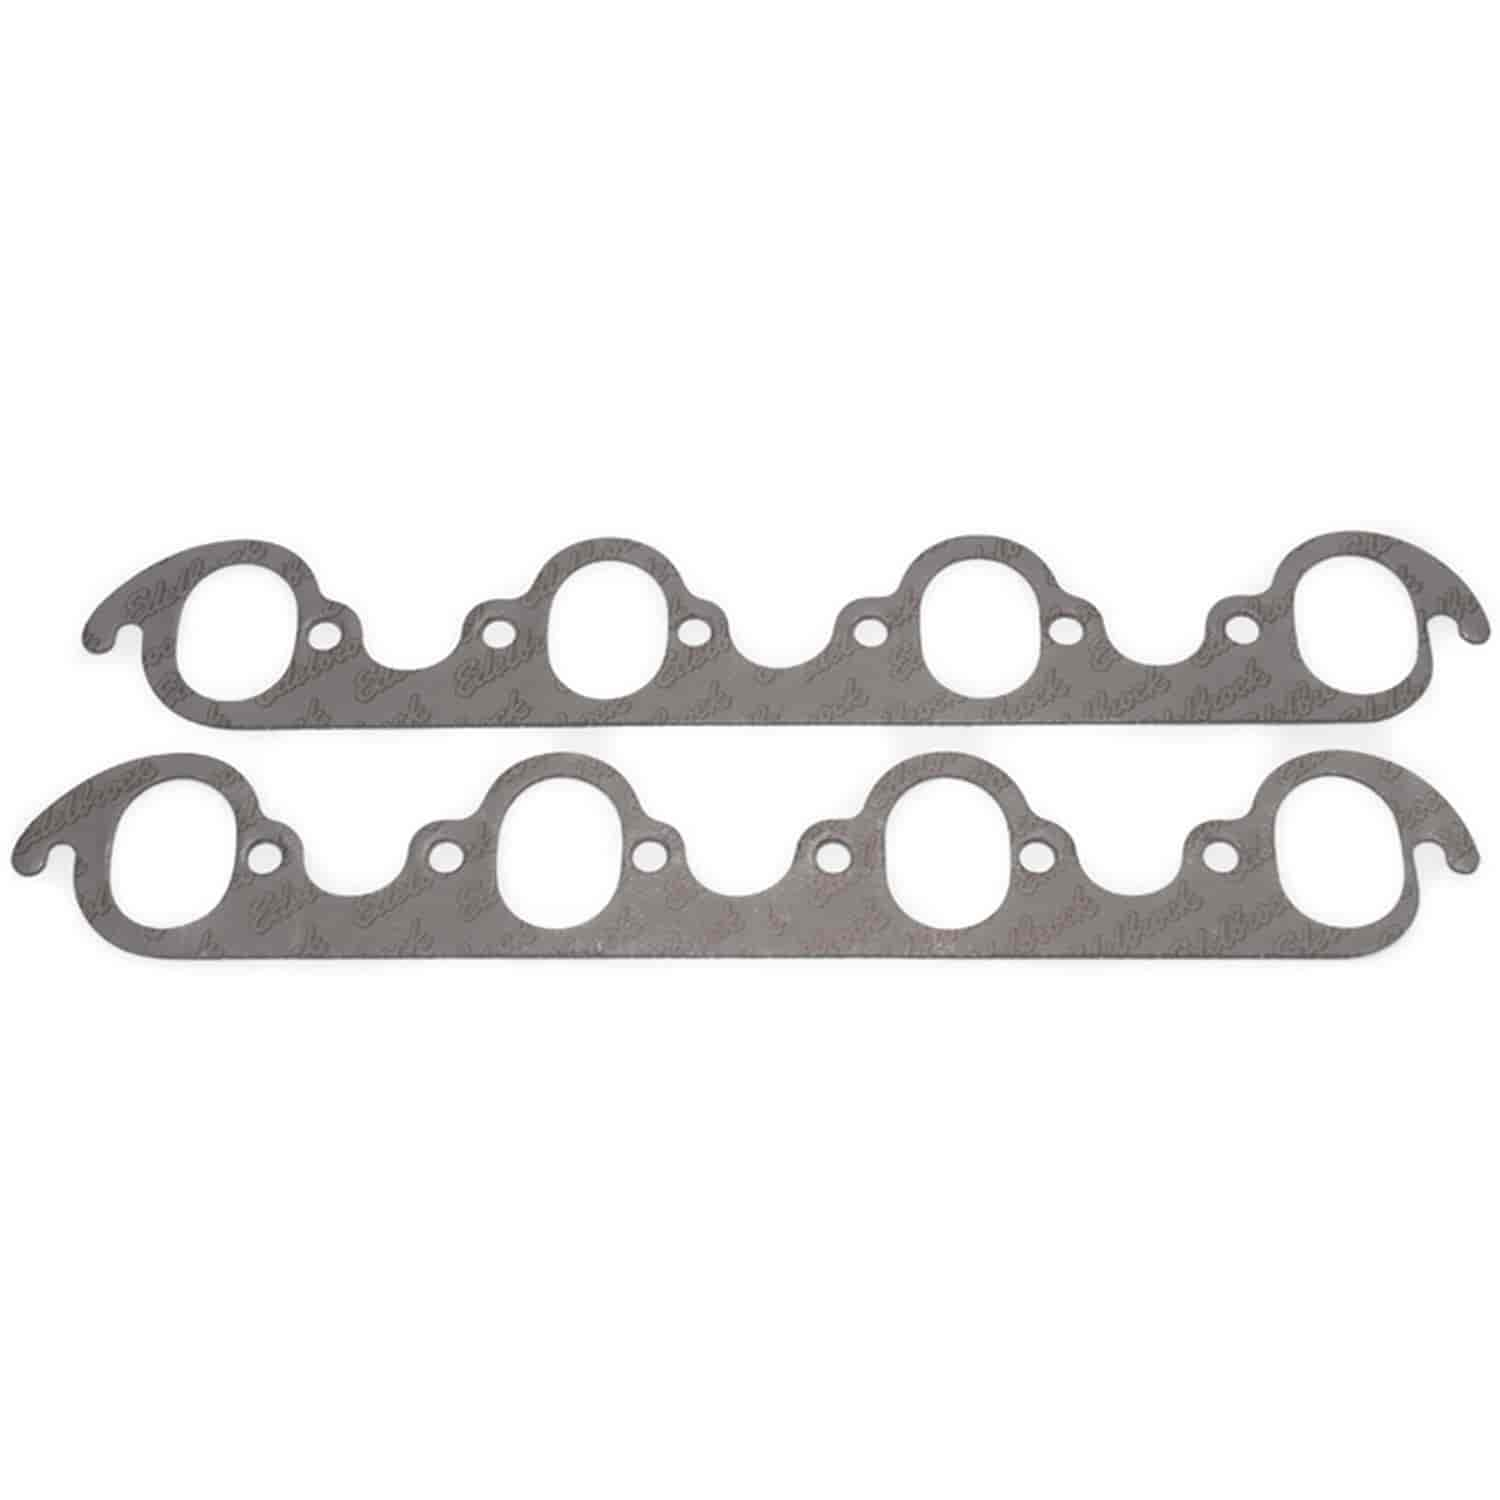 Edelbrock 7228 Exhaust Gaskets For Big Block Ford Jegs Timing A 460 Engine